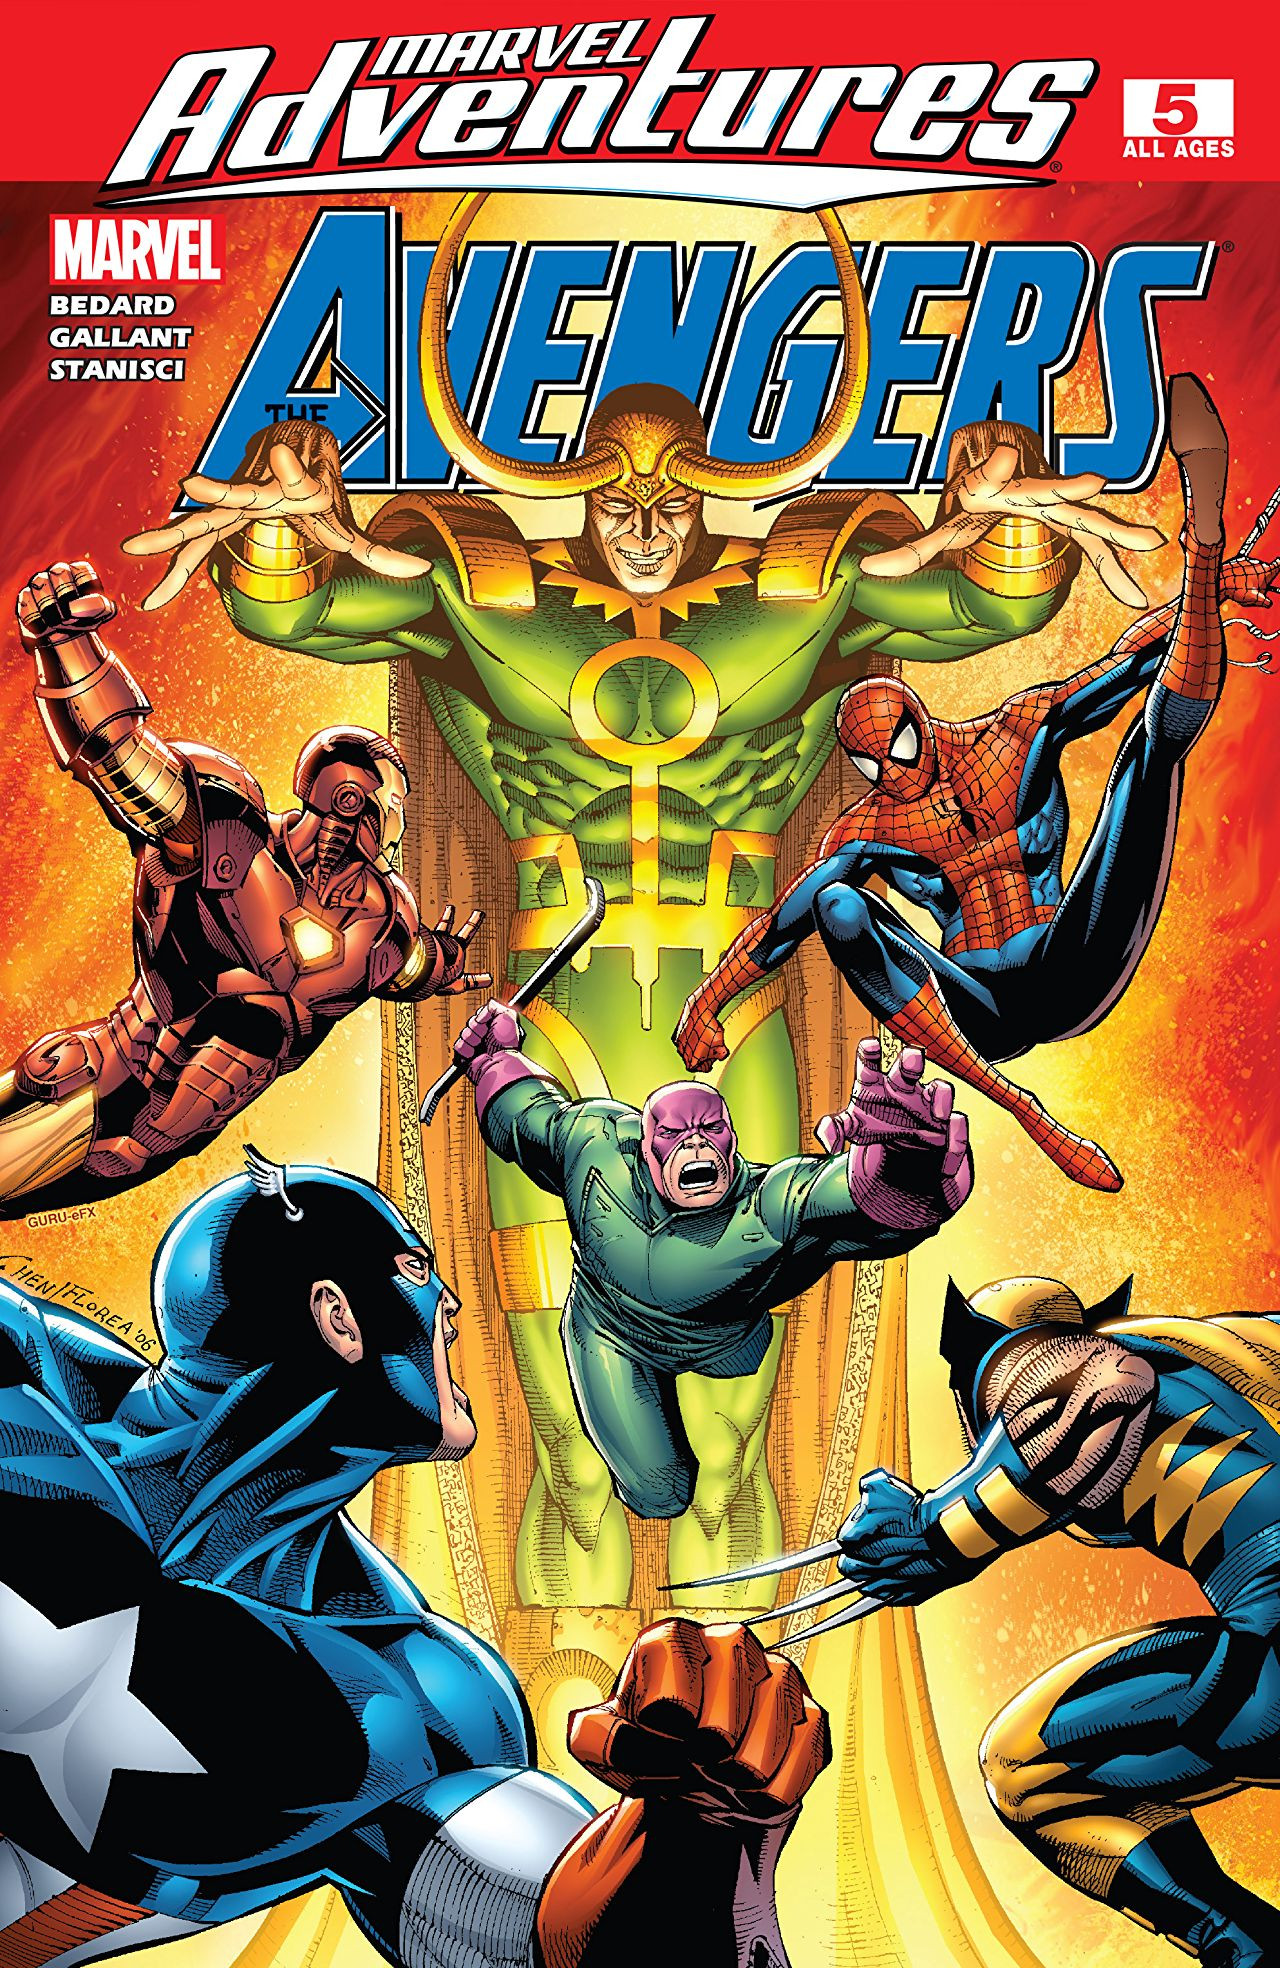 Marvel Adventures: The Avengers Vol 1 5